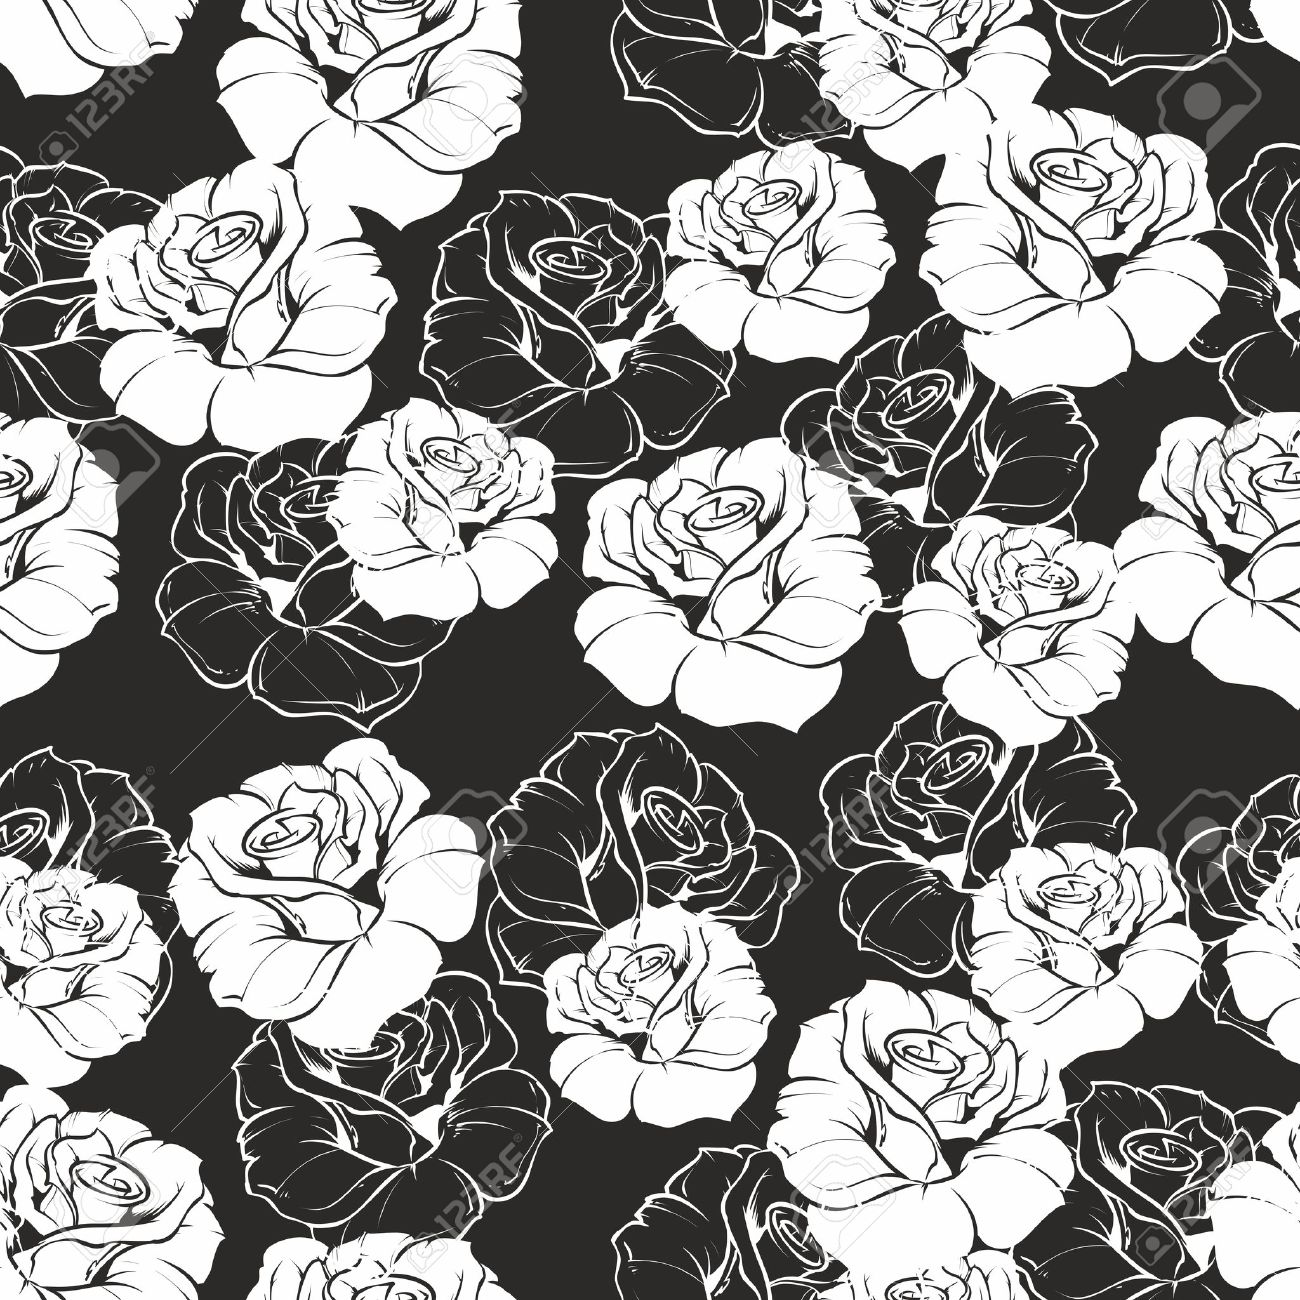 Seamless Vector Dark Floral Pattern With White Retro Roses On Black Background Beautiful Abstract Vintage Texture